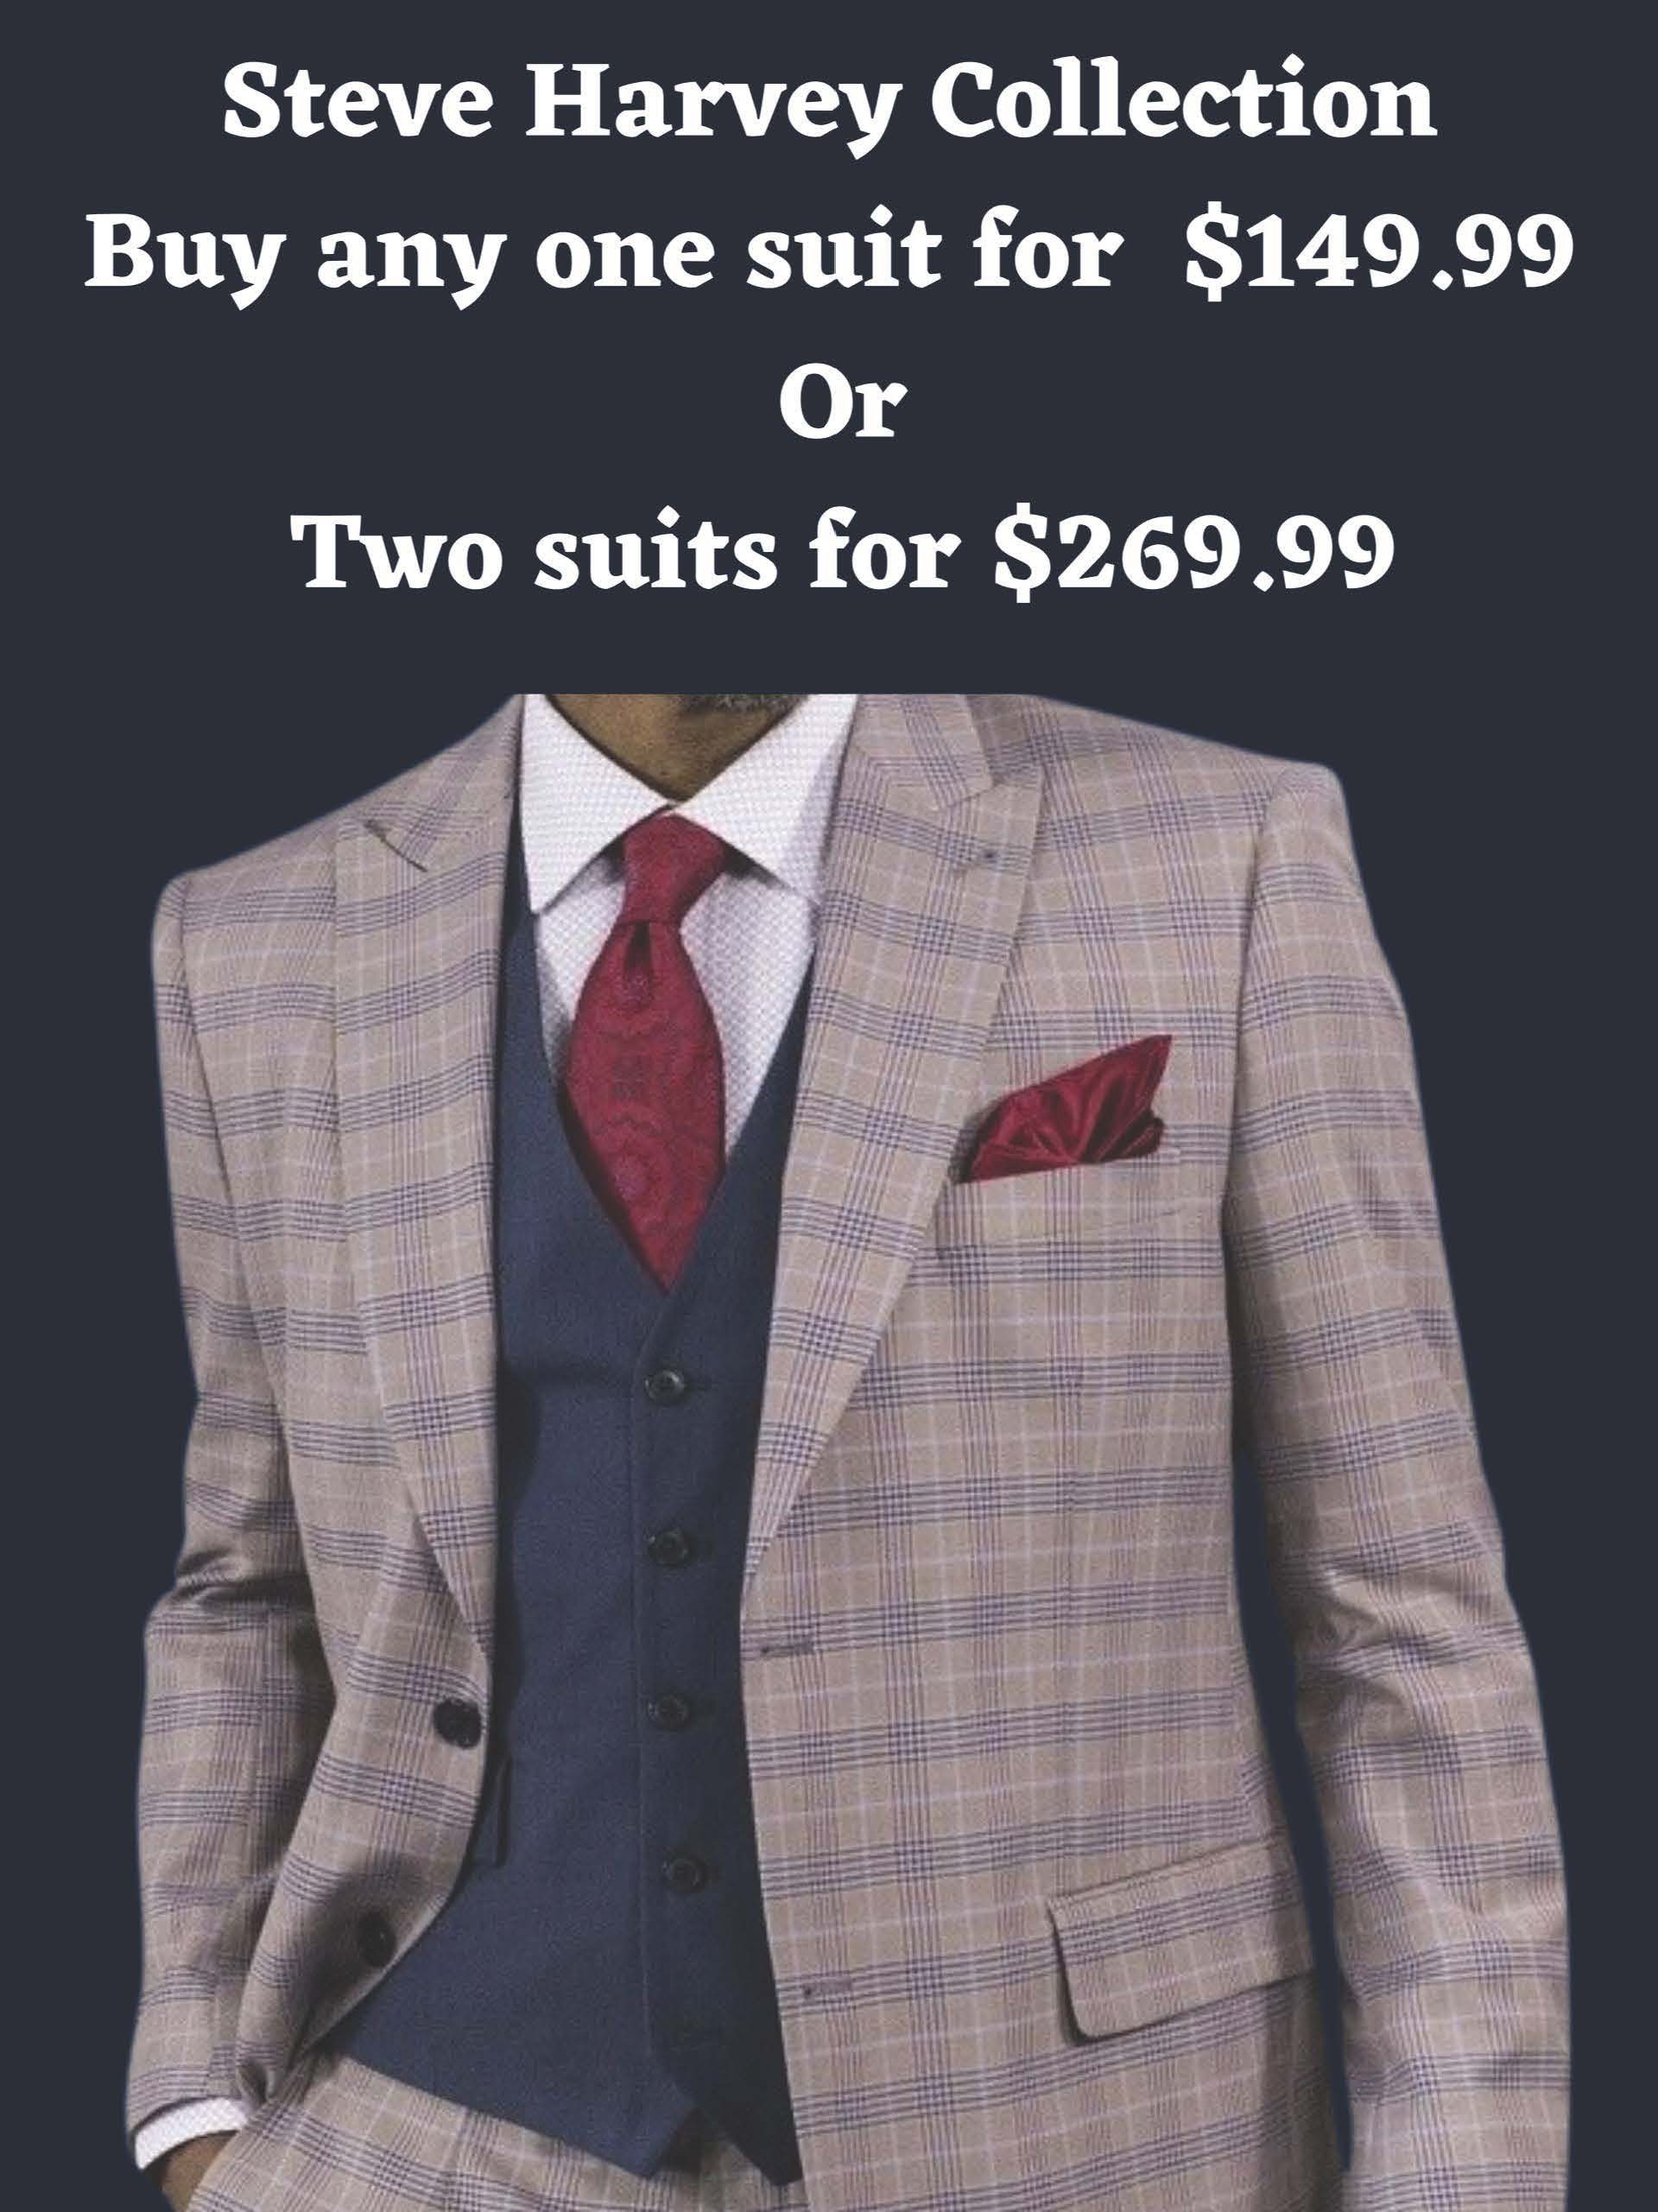 Steve Harvey Collection from Suit City